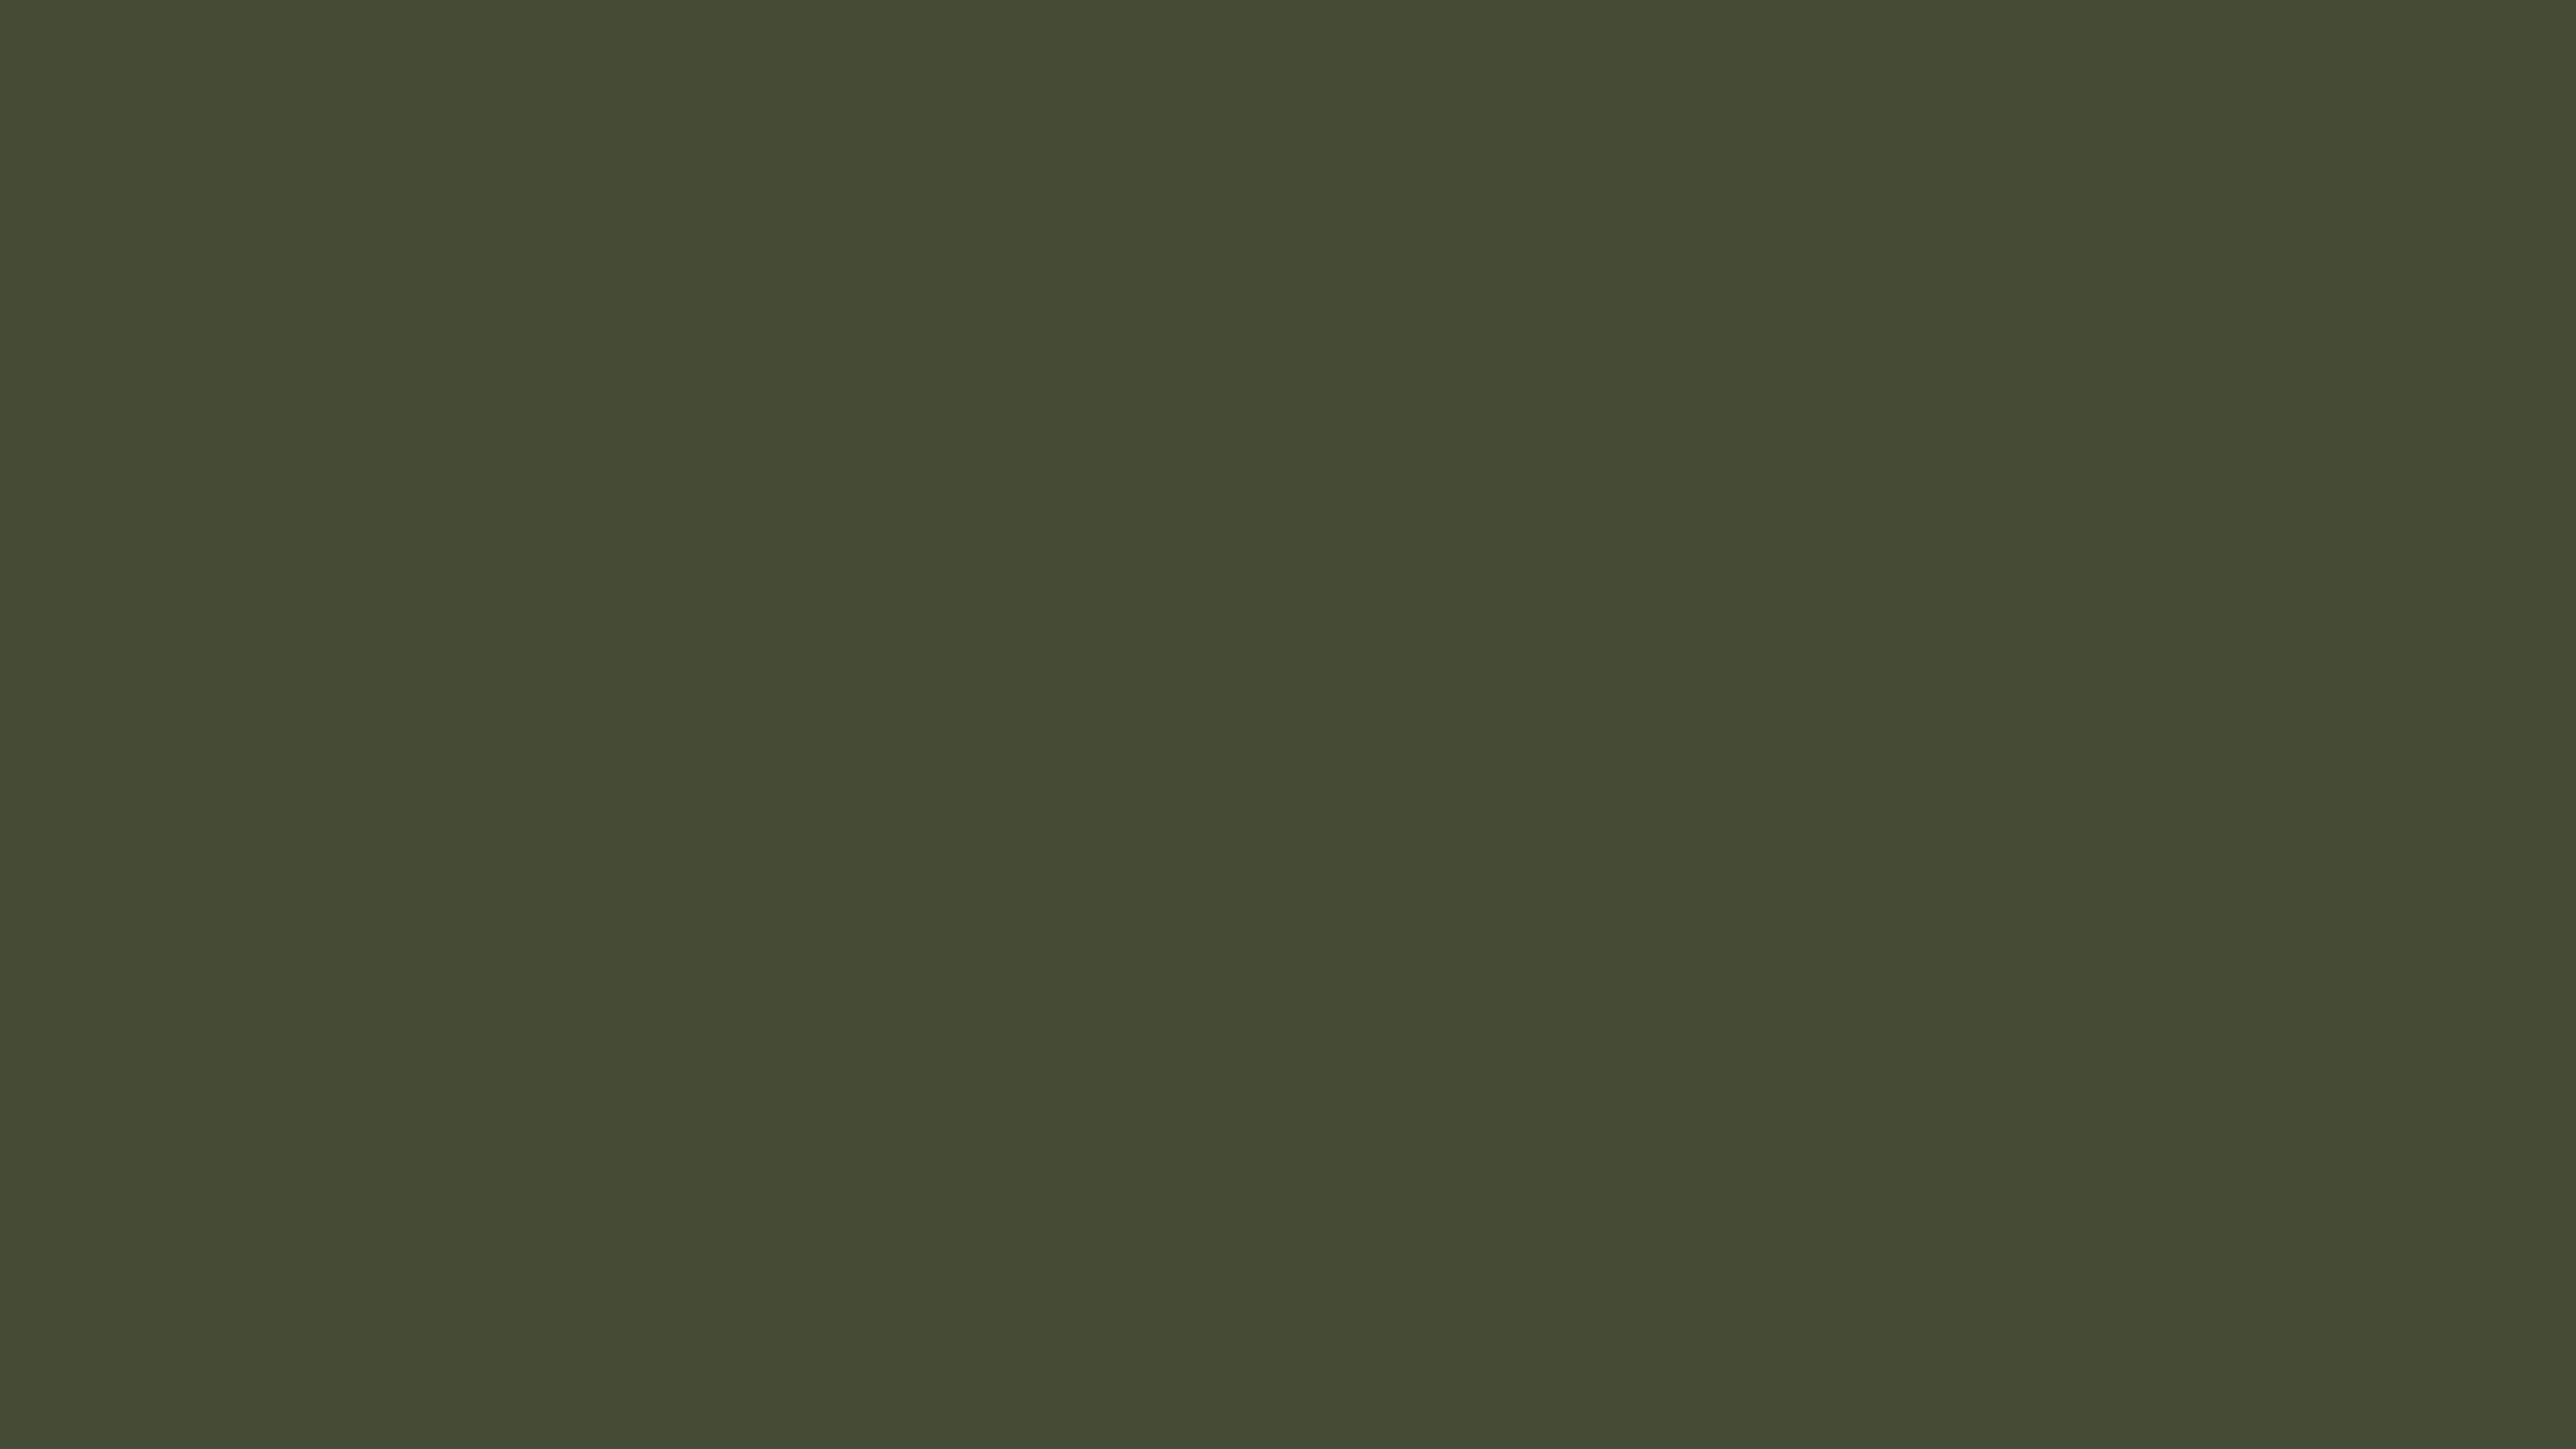 5120x2880 Rifle Green Solid Color Background